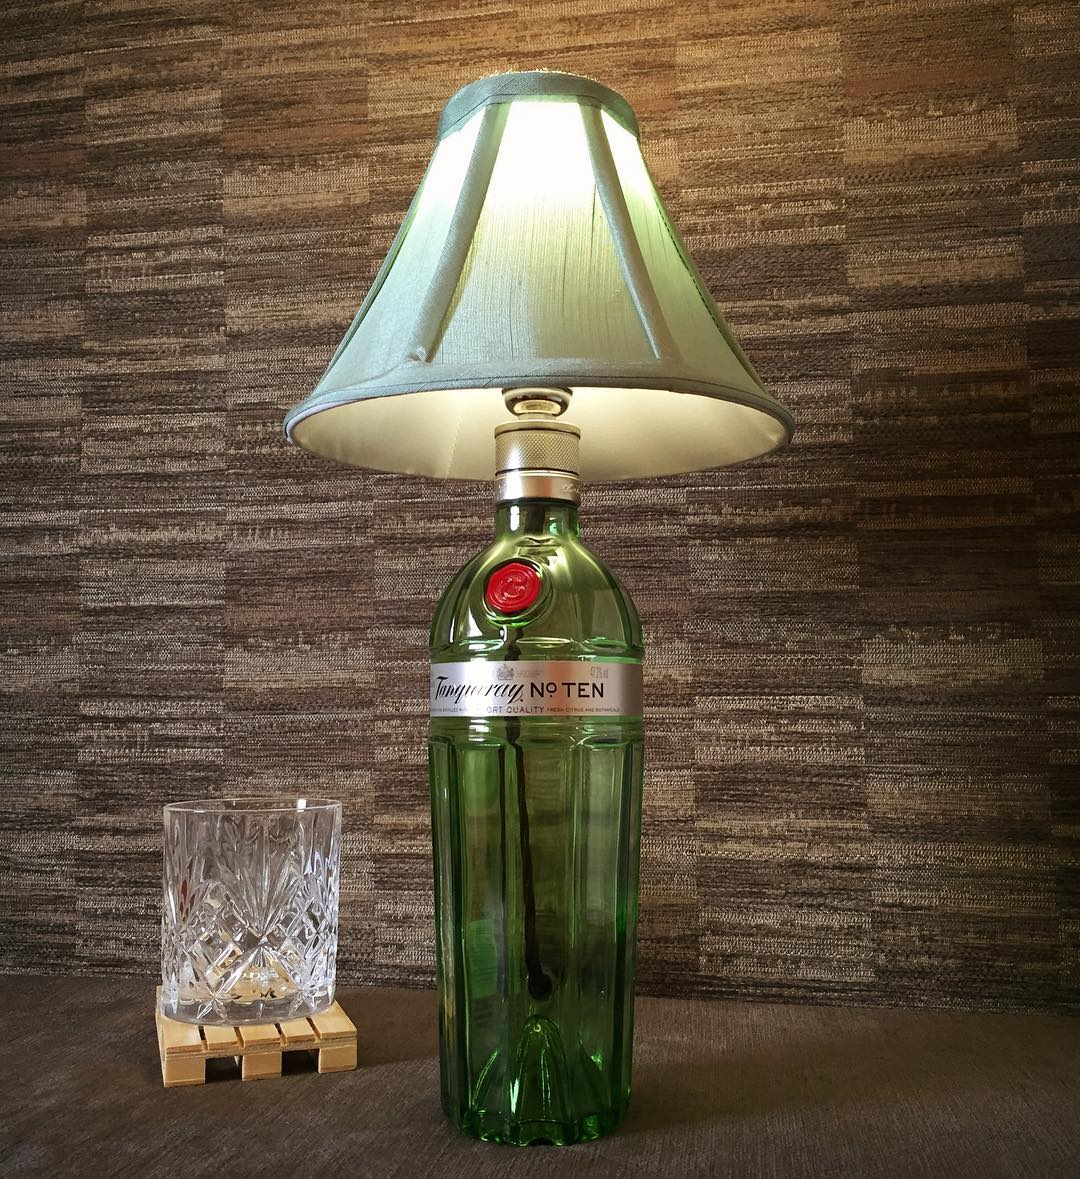 Another custom order done this week! #etsy #gin #upcycle #CraftHour #HandmadeHour #crafts #etsyshop #GiftIdea #green #steampunk #boho<br>http://pic.twitter.com/K3Y7trZ1jg